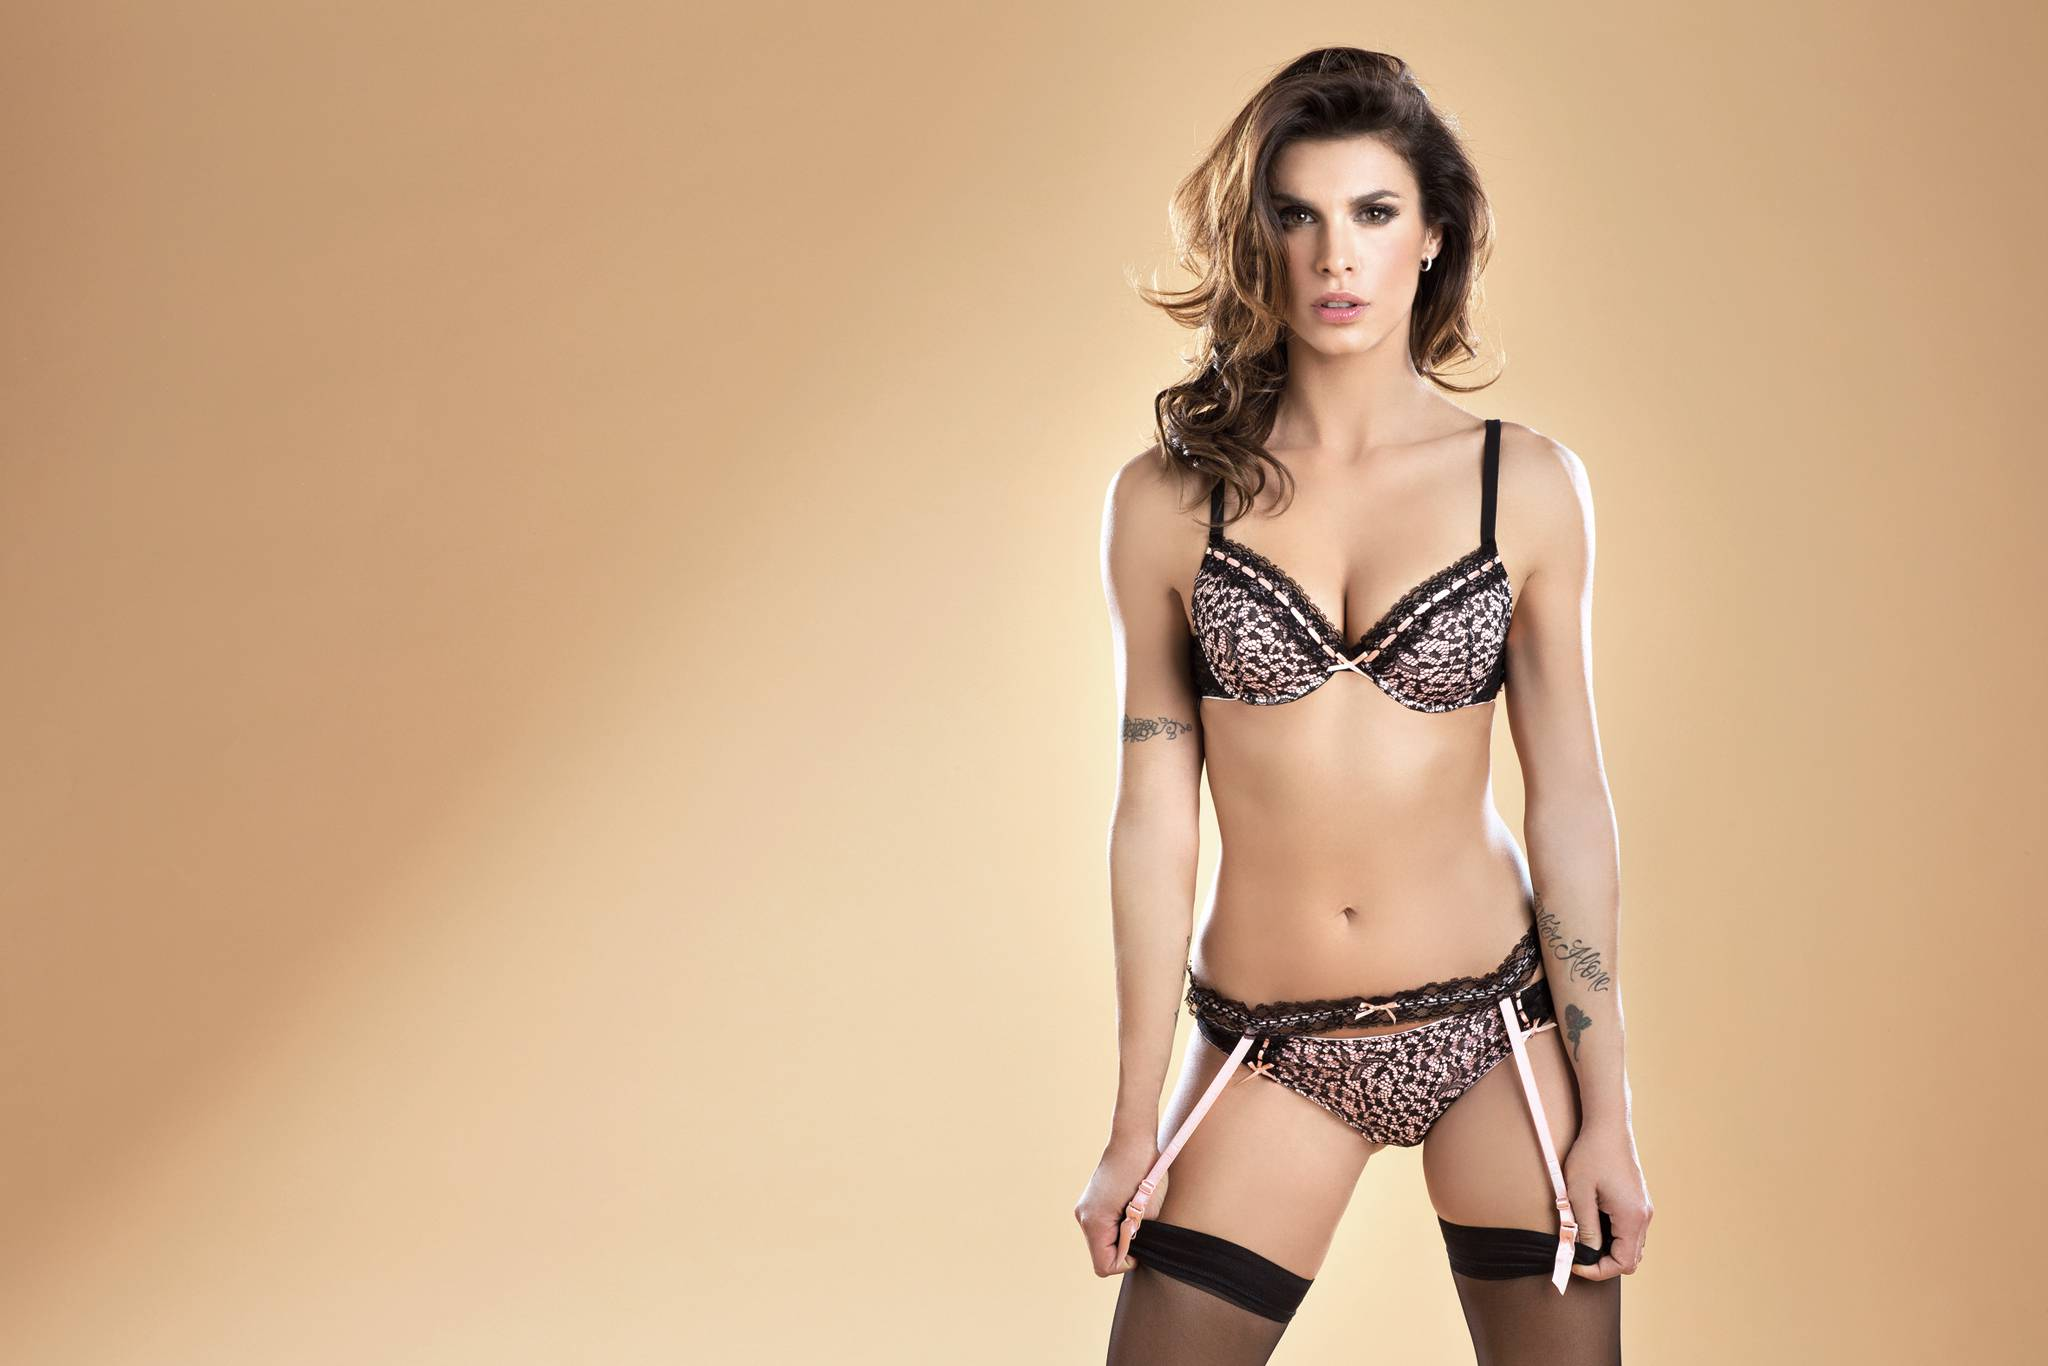 2048x1366 > Elisabetta Canalis Wallpapers